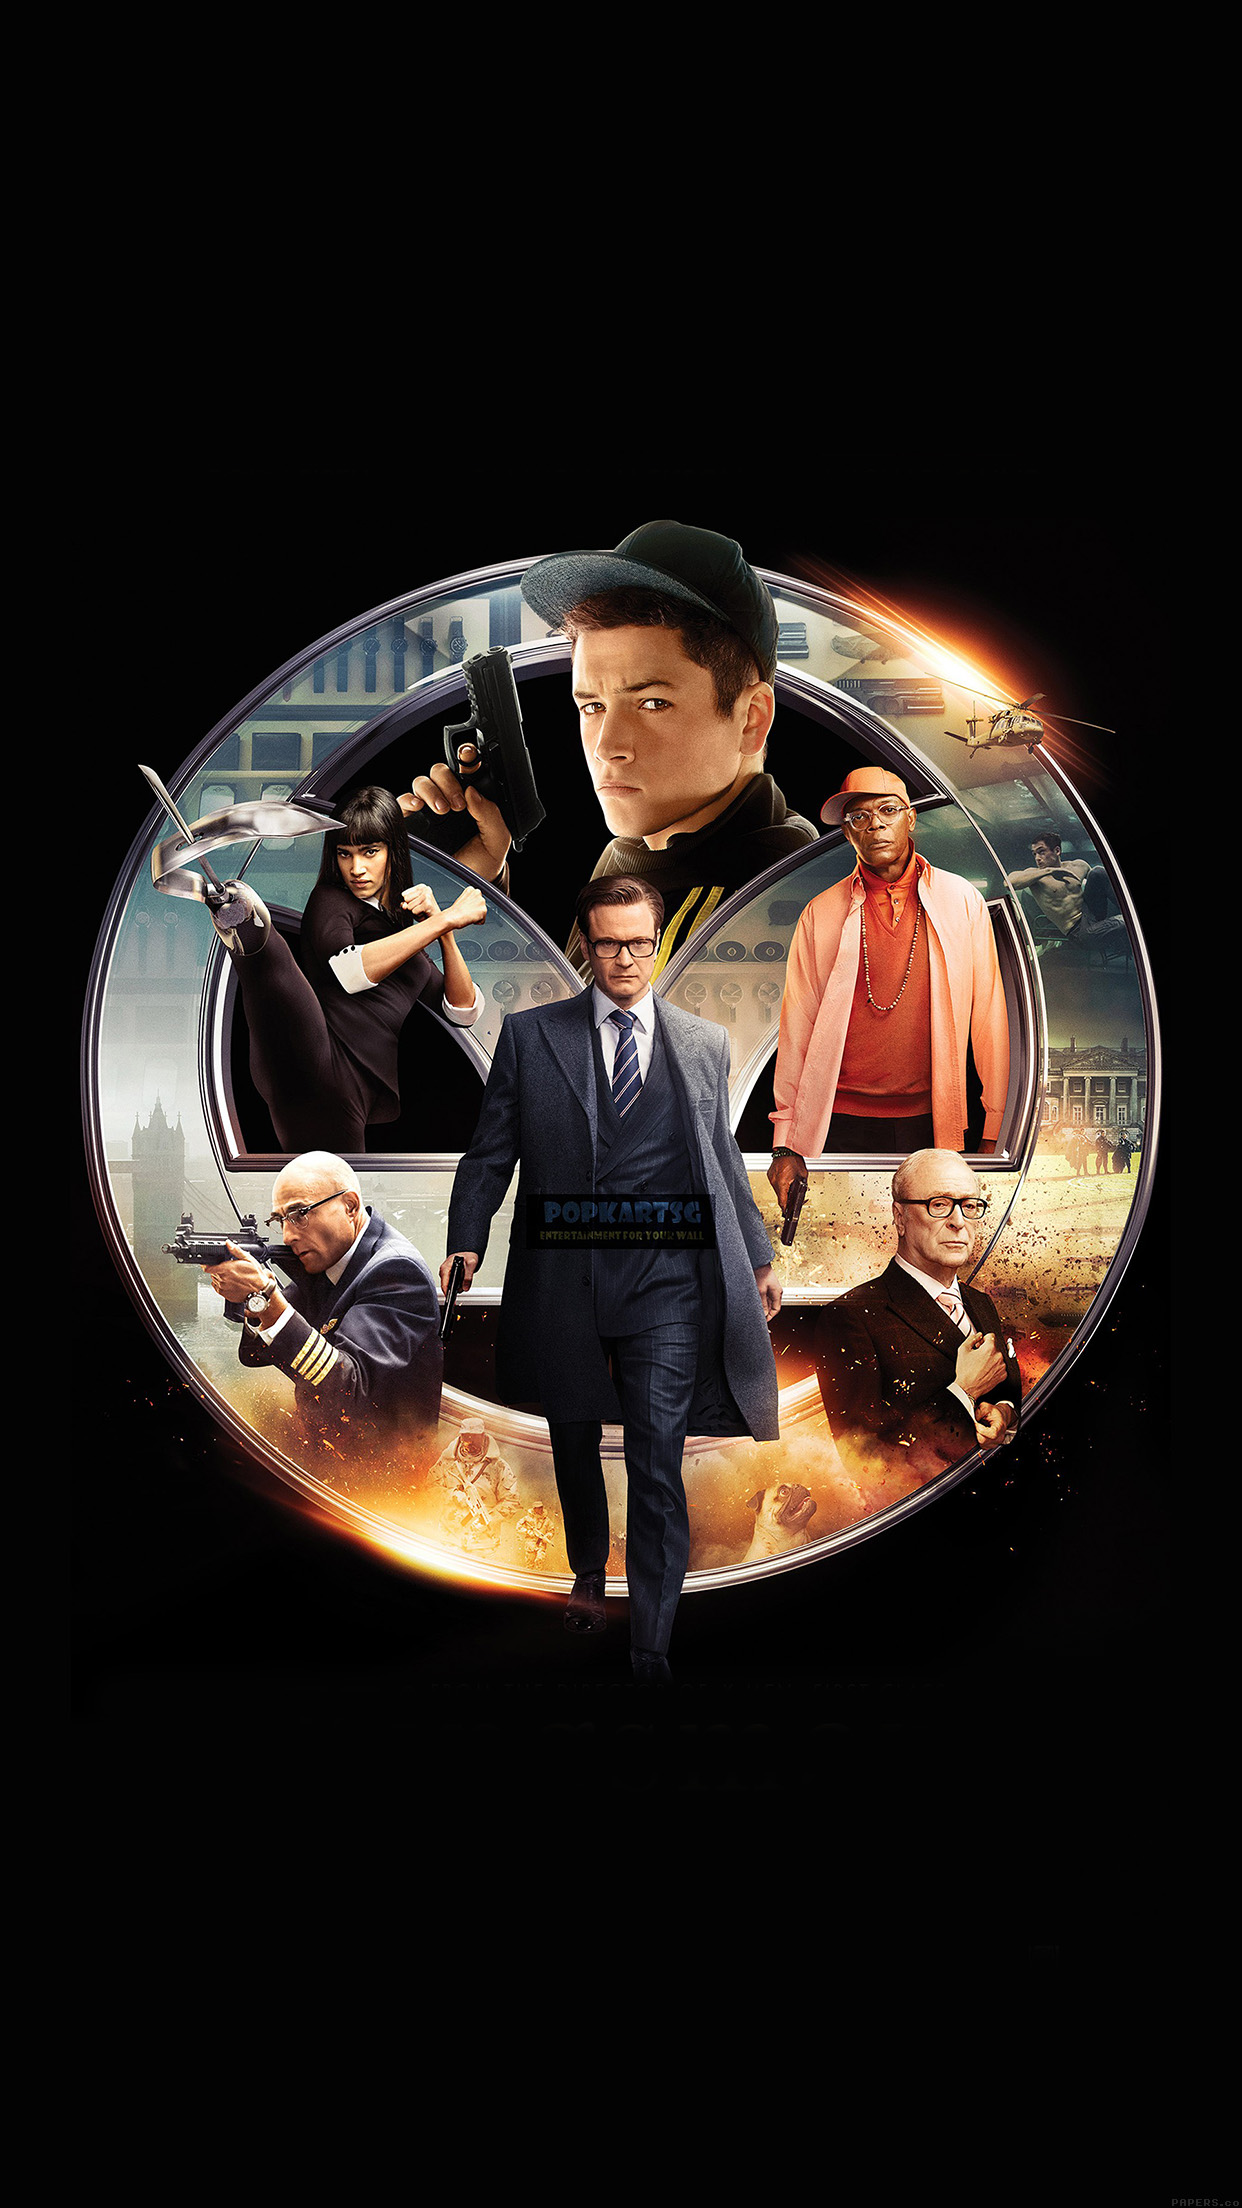 Kingsman Secret Service Film Art Poster Android Wallpaper Android Hd Wallpapers